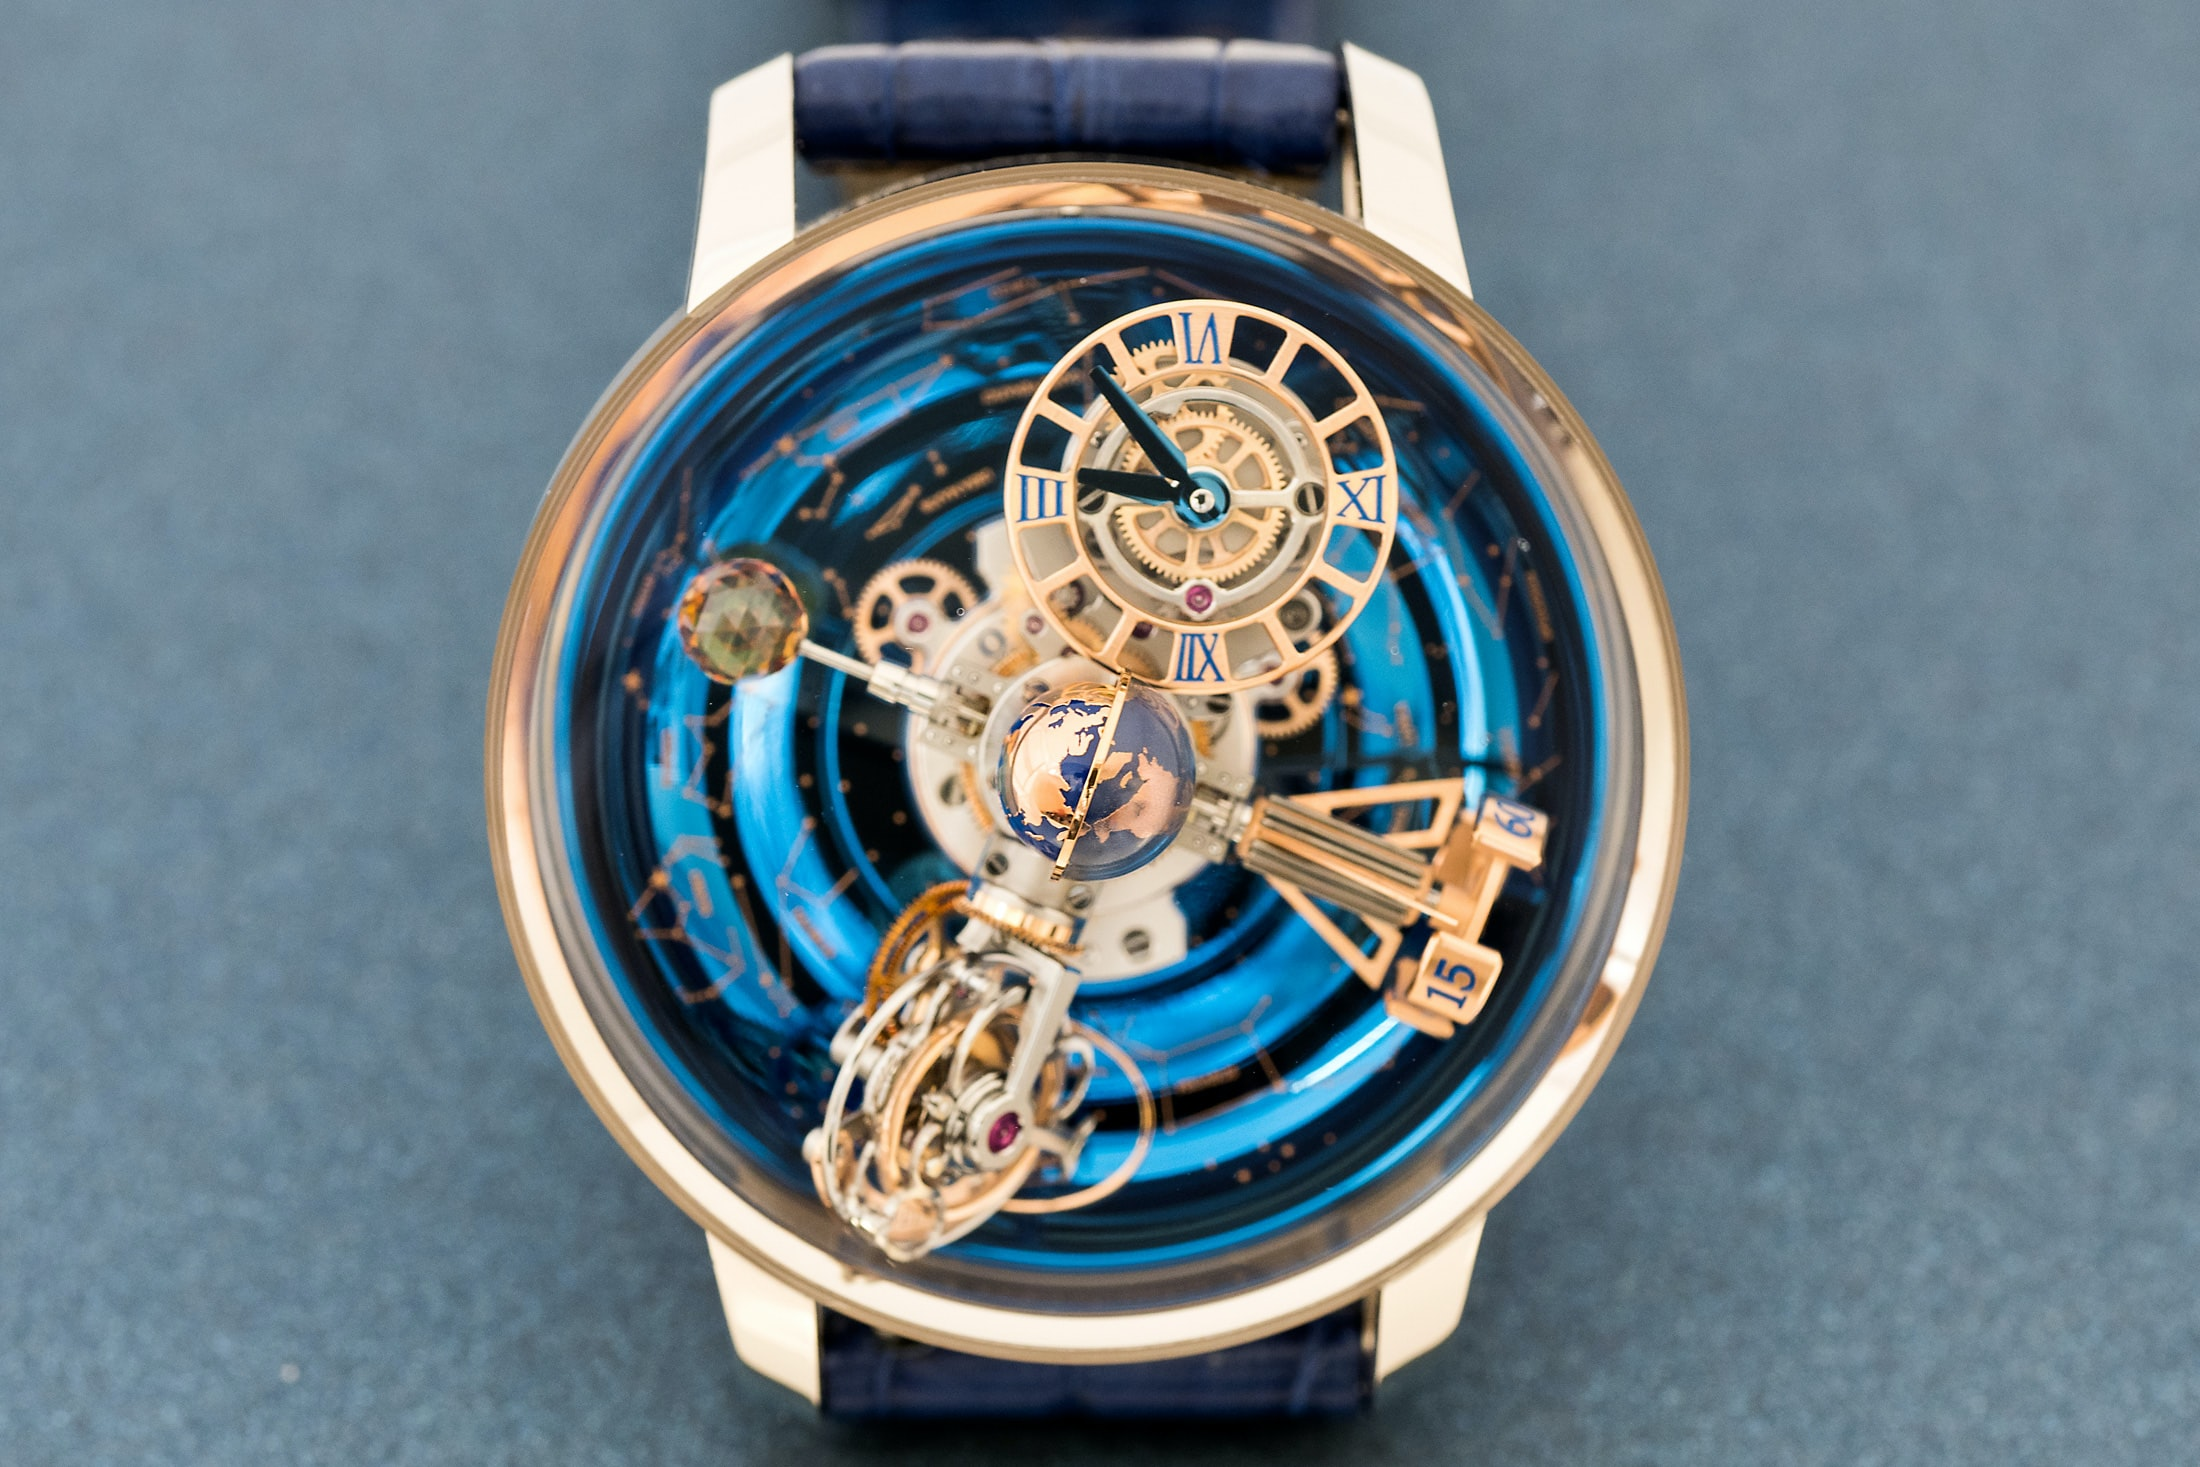 Hands-On: The Jacob & Co. Astronomia Sky Hands-On: The Jacob & Co. Astronomia Sky jacob 7